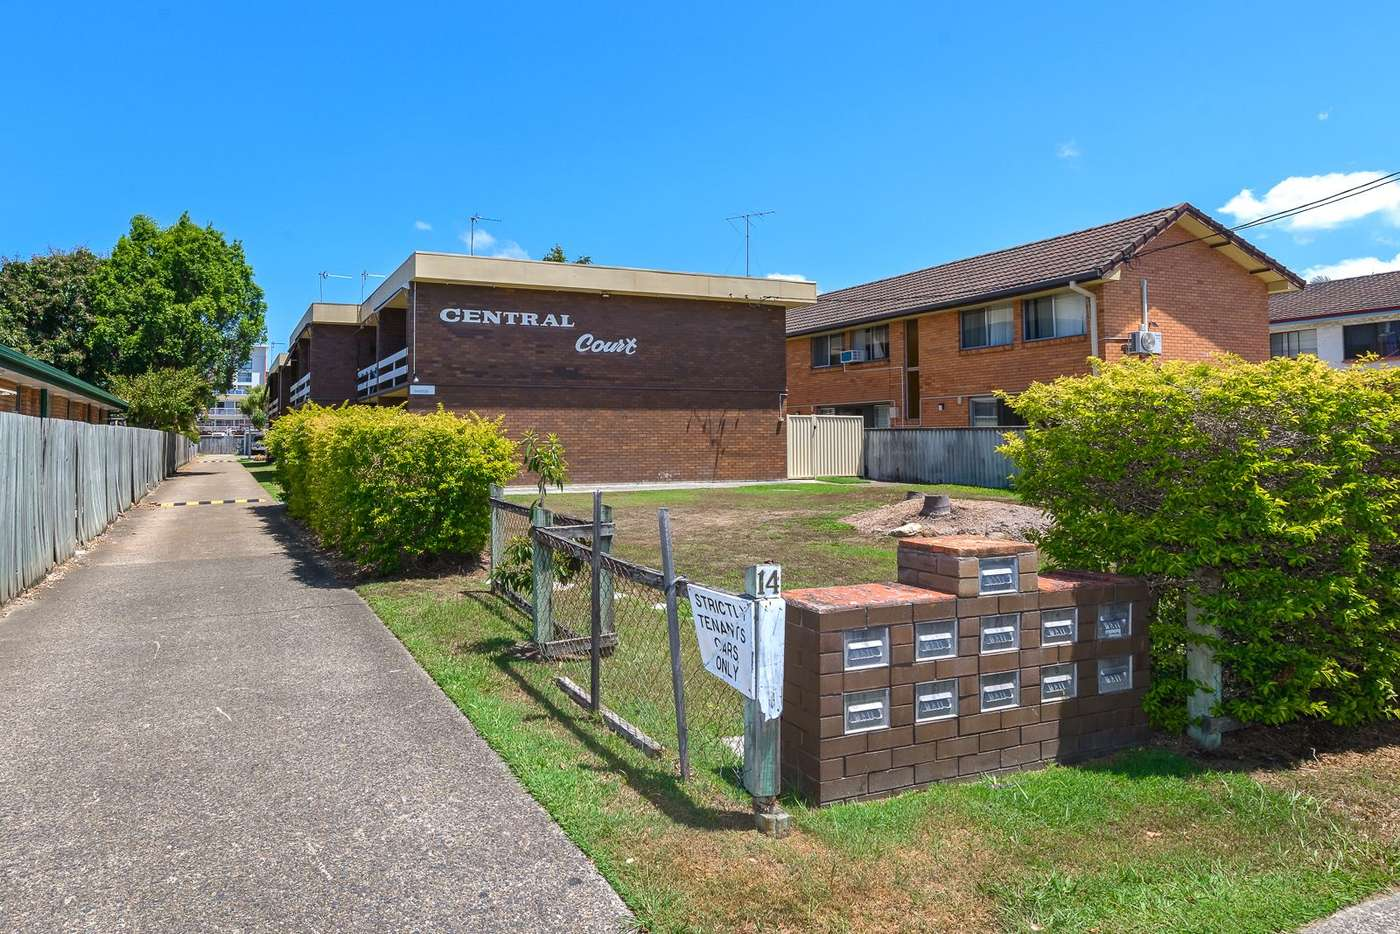 Main view of Homely townhouse listing, 1/14 Central Street, Labrador, QLD 4215